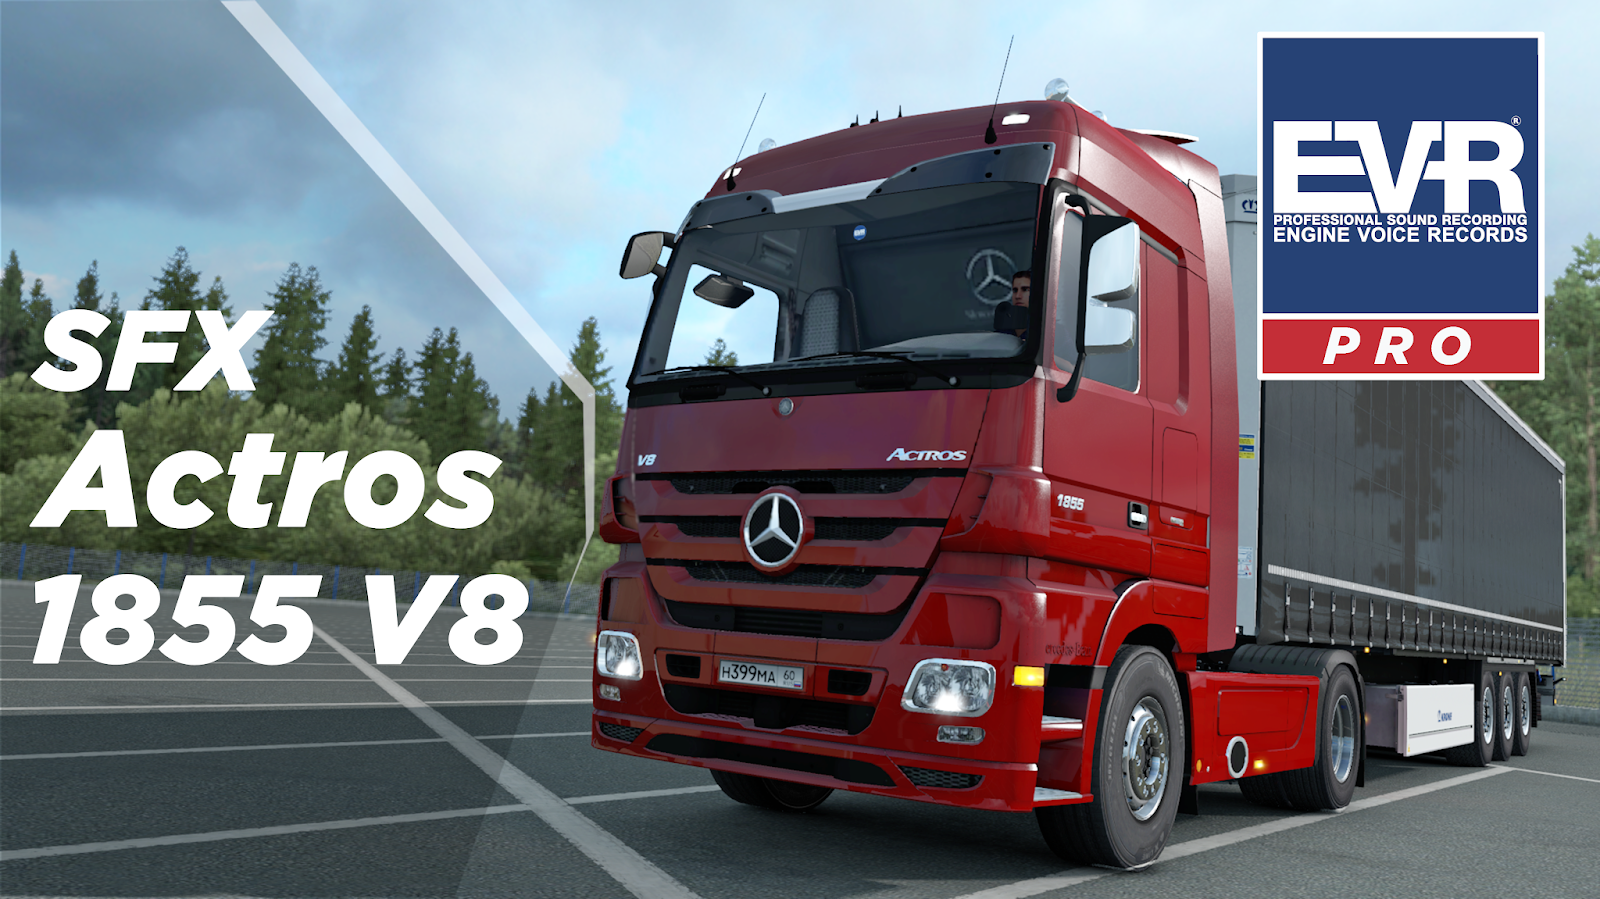 Engine Voice Records-Professional sound recording: Actros